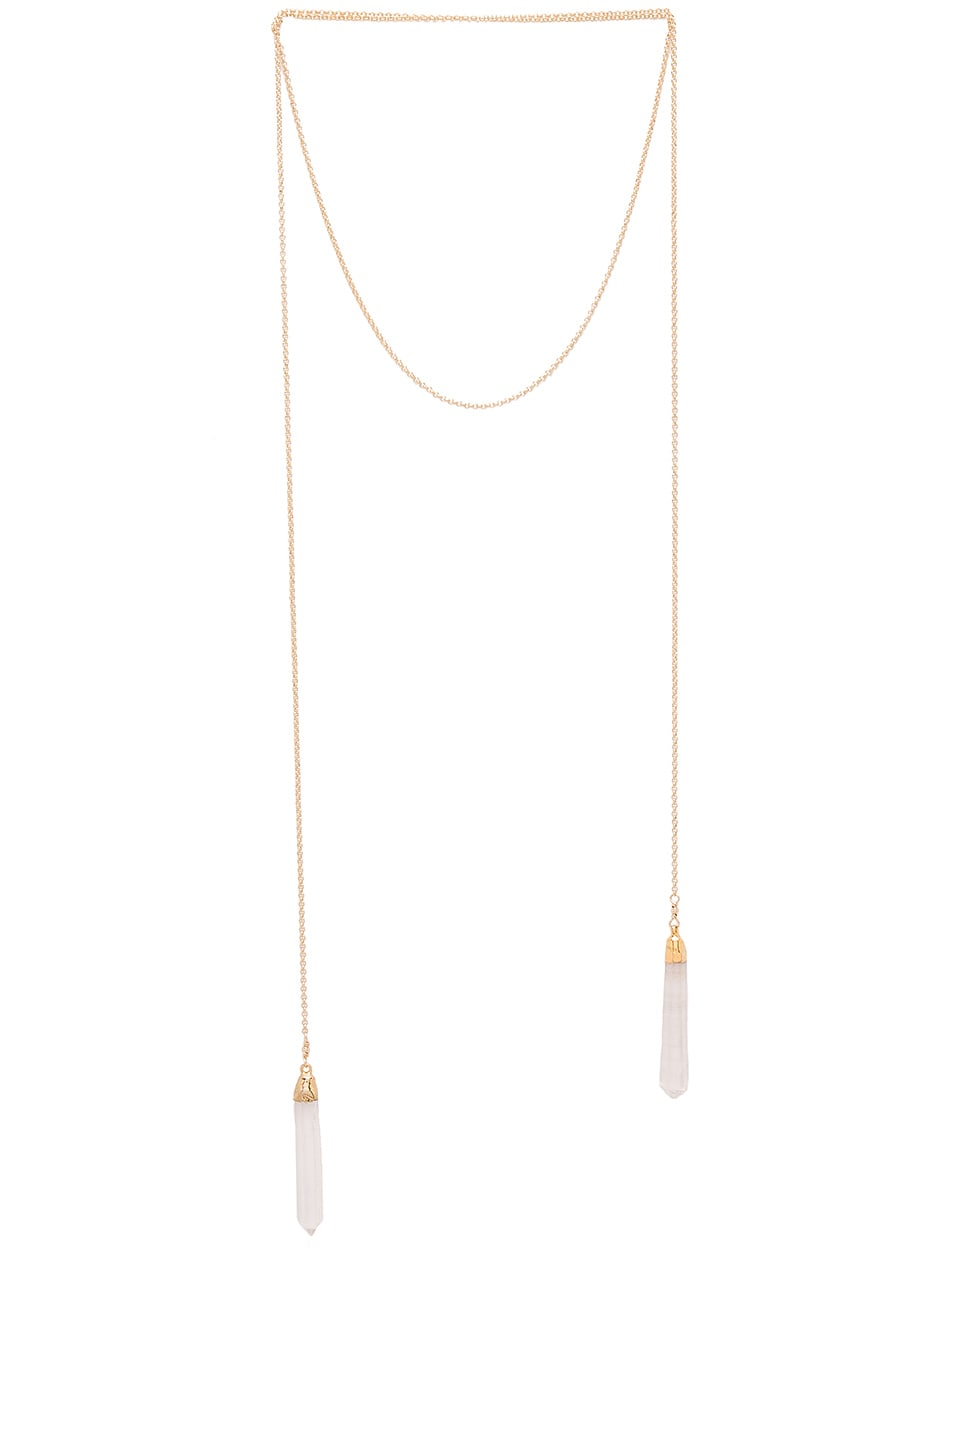 Jacquie Aiche Double Crystal Wrap Necklace in Gold